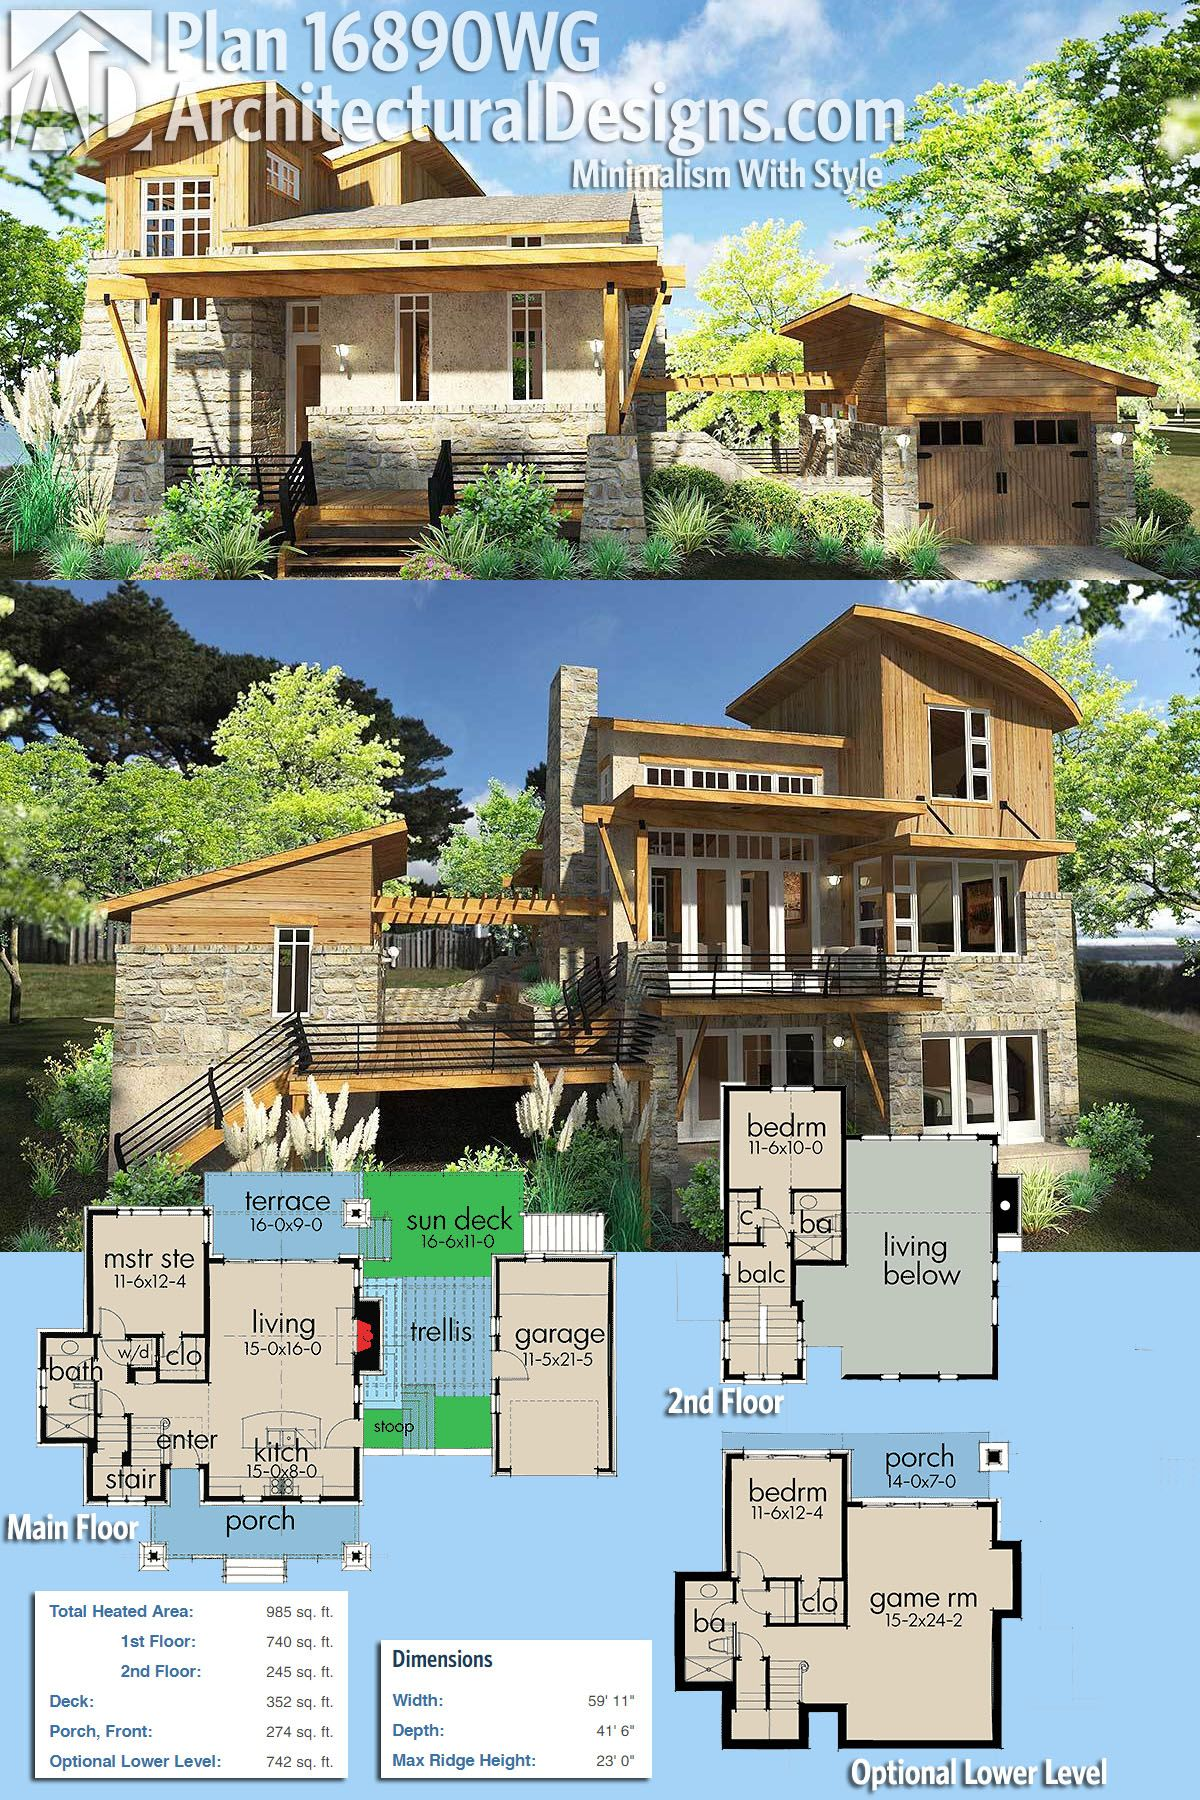 Architectural Designs House Plan 16890WG gives you over 900 square feet of heated living space plus an optional finished lower level with an additional bed and bath. Ready when you are. Where do YOU want to build?